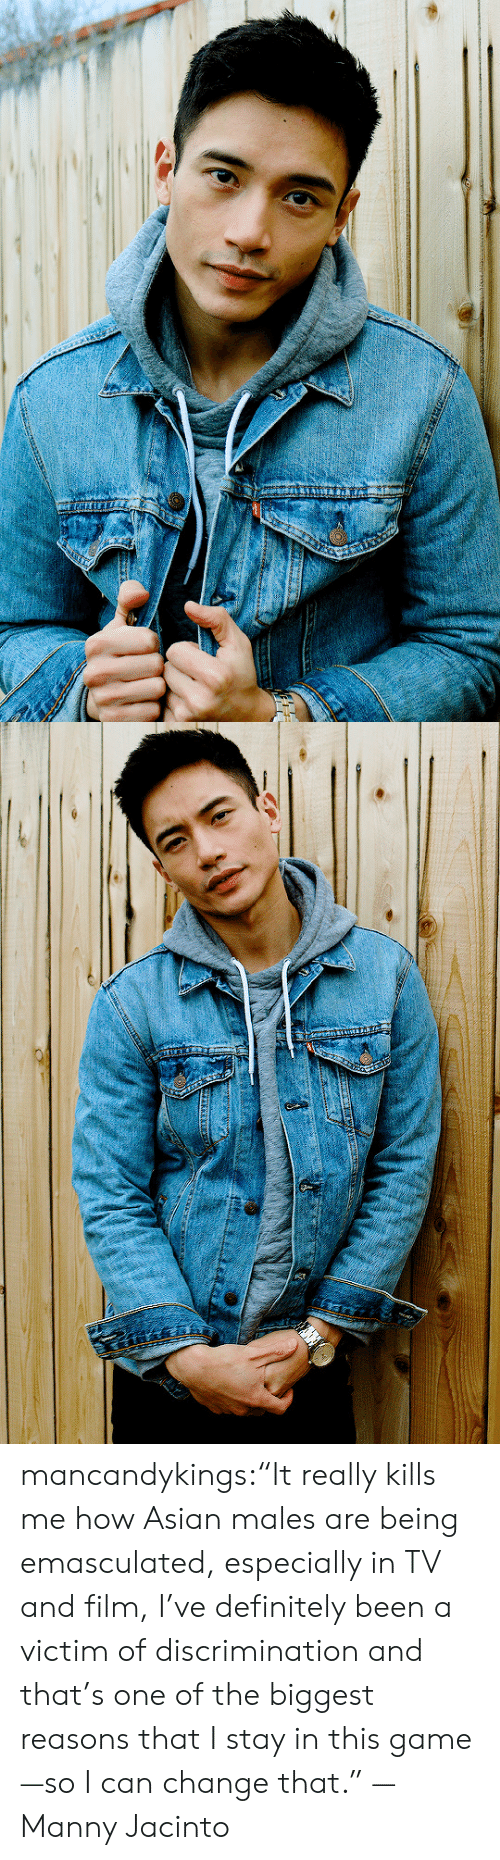 """Asian, Definitely, and Tumblr: mancandykings:""""It really kills me how Asian males are being emasculated, especially in TV and film, I've definitely been a victim of discrimination and that's one of the biggest reasons that I stay in this game—so I can change that."""" — Manny Jacinto"""